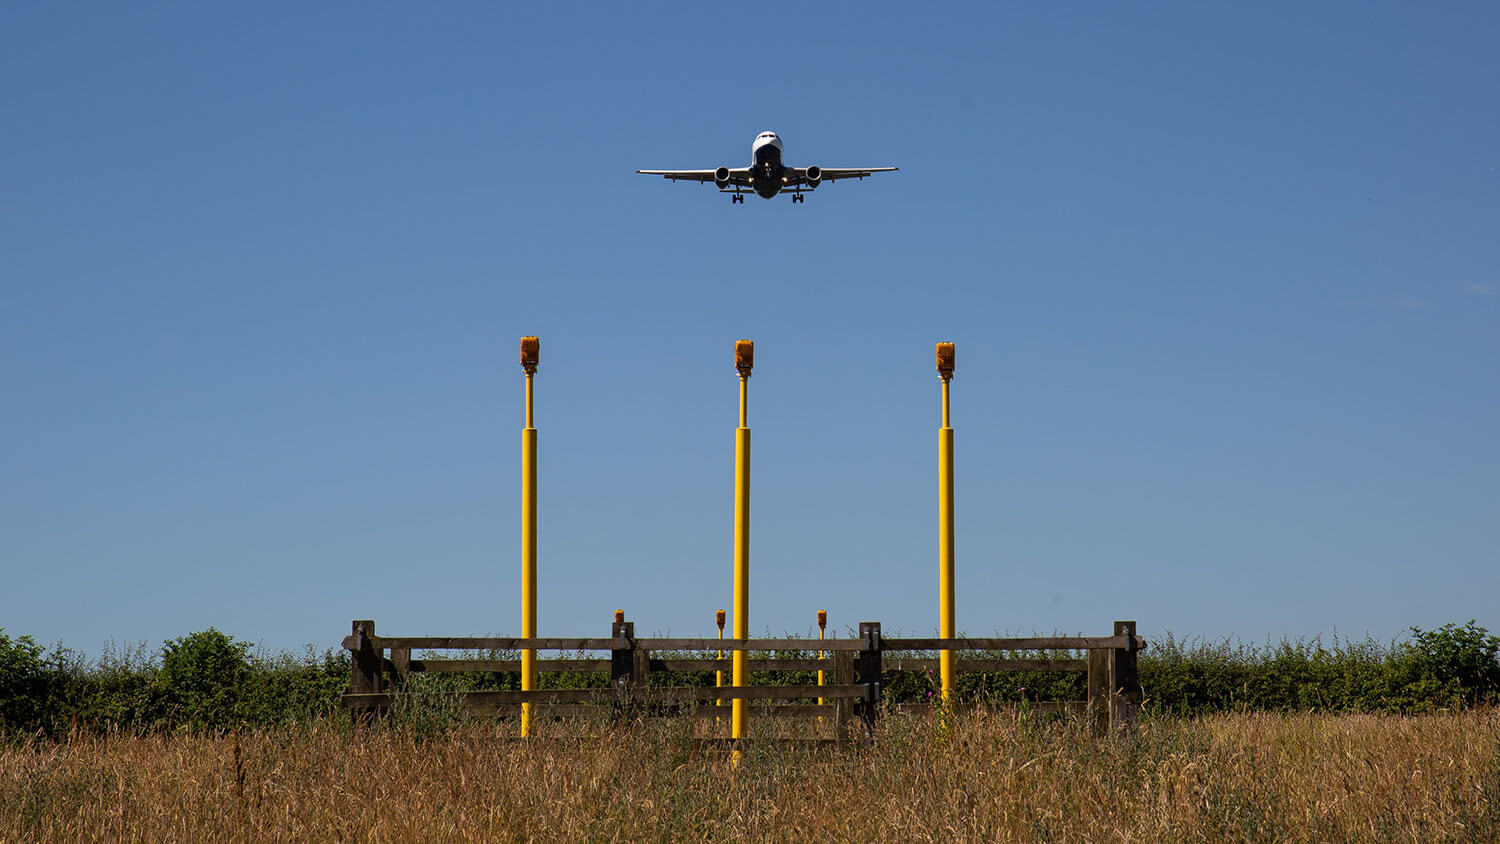 Air freight on final approach over landing lights